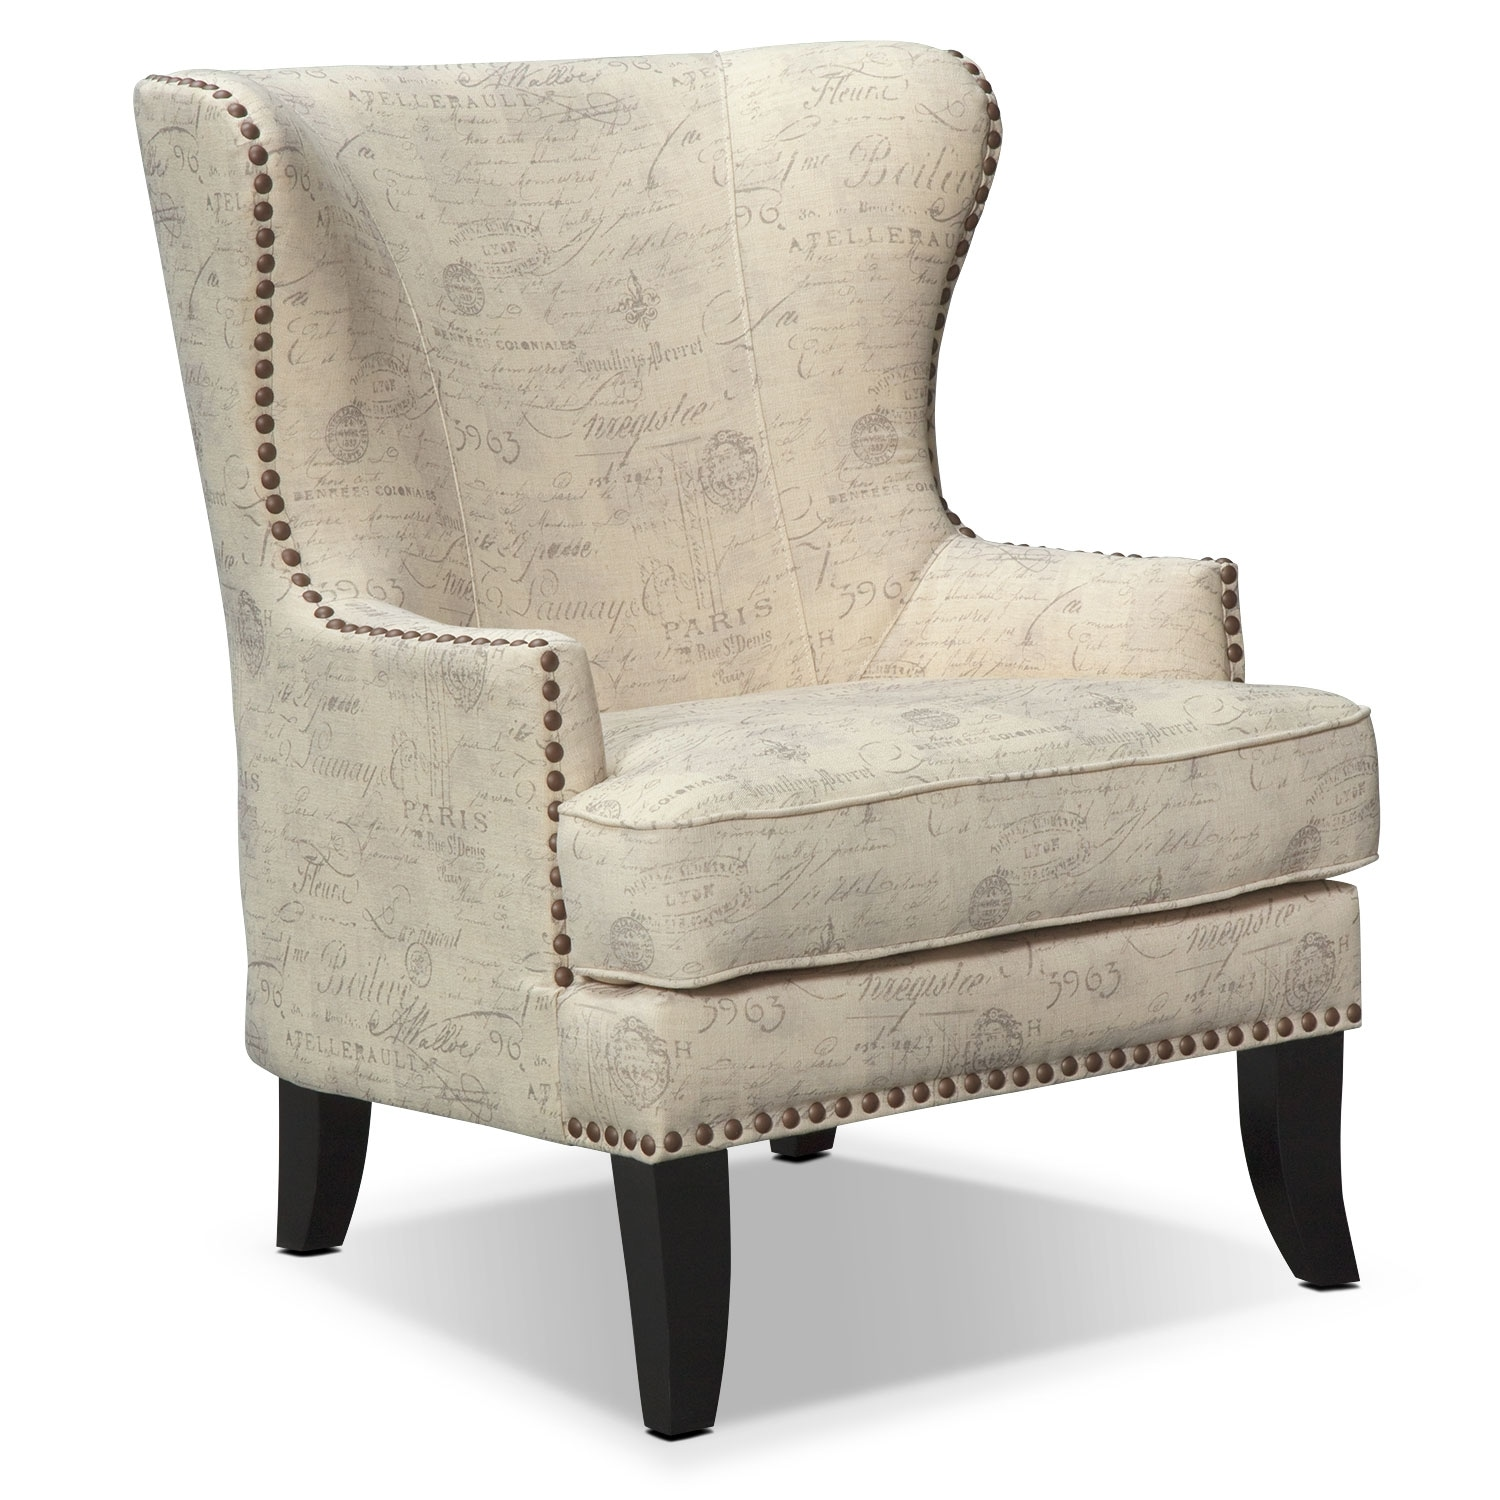 Marseille accent chair cream and black american for Seating room furniture